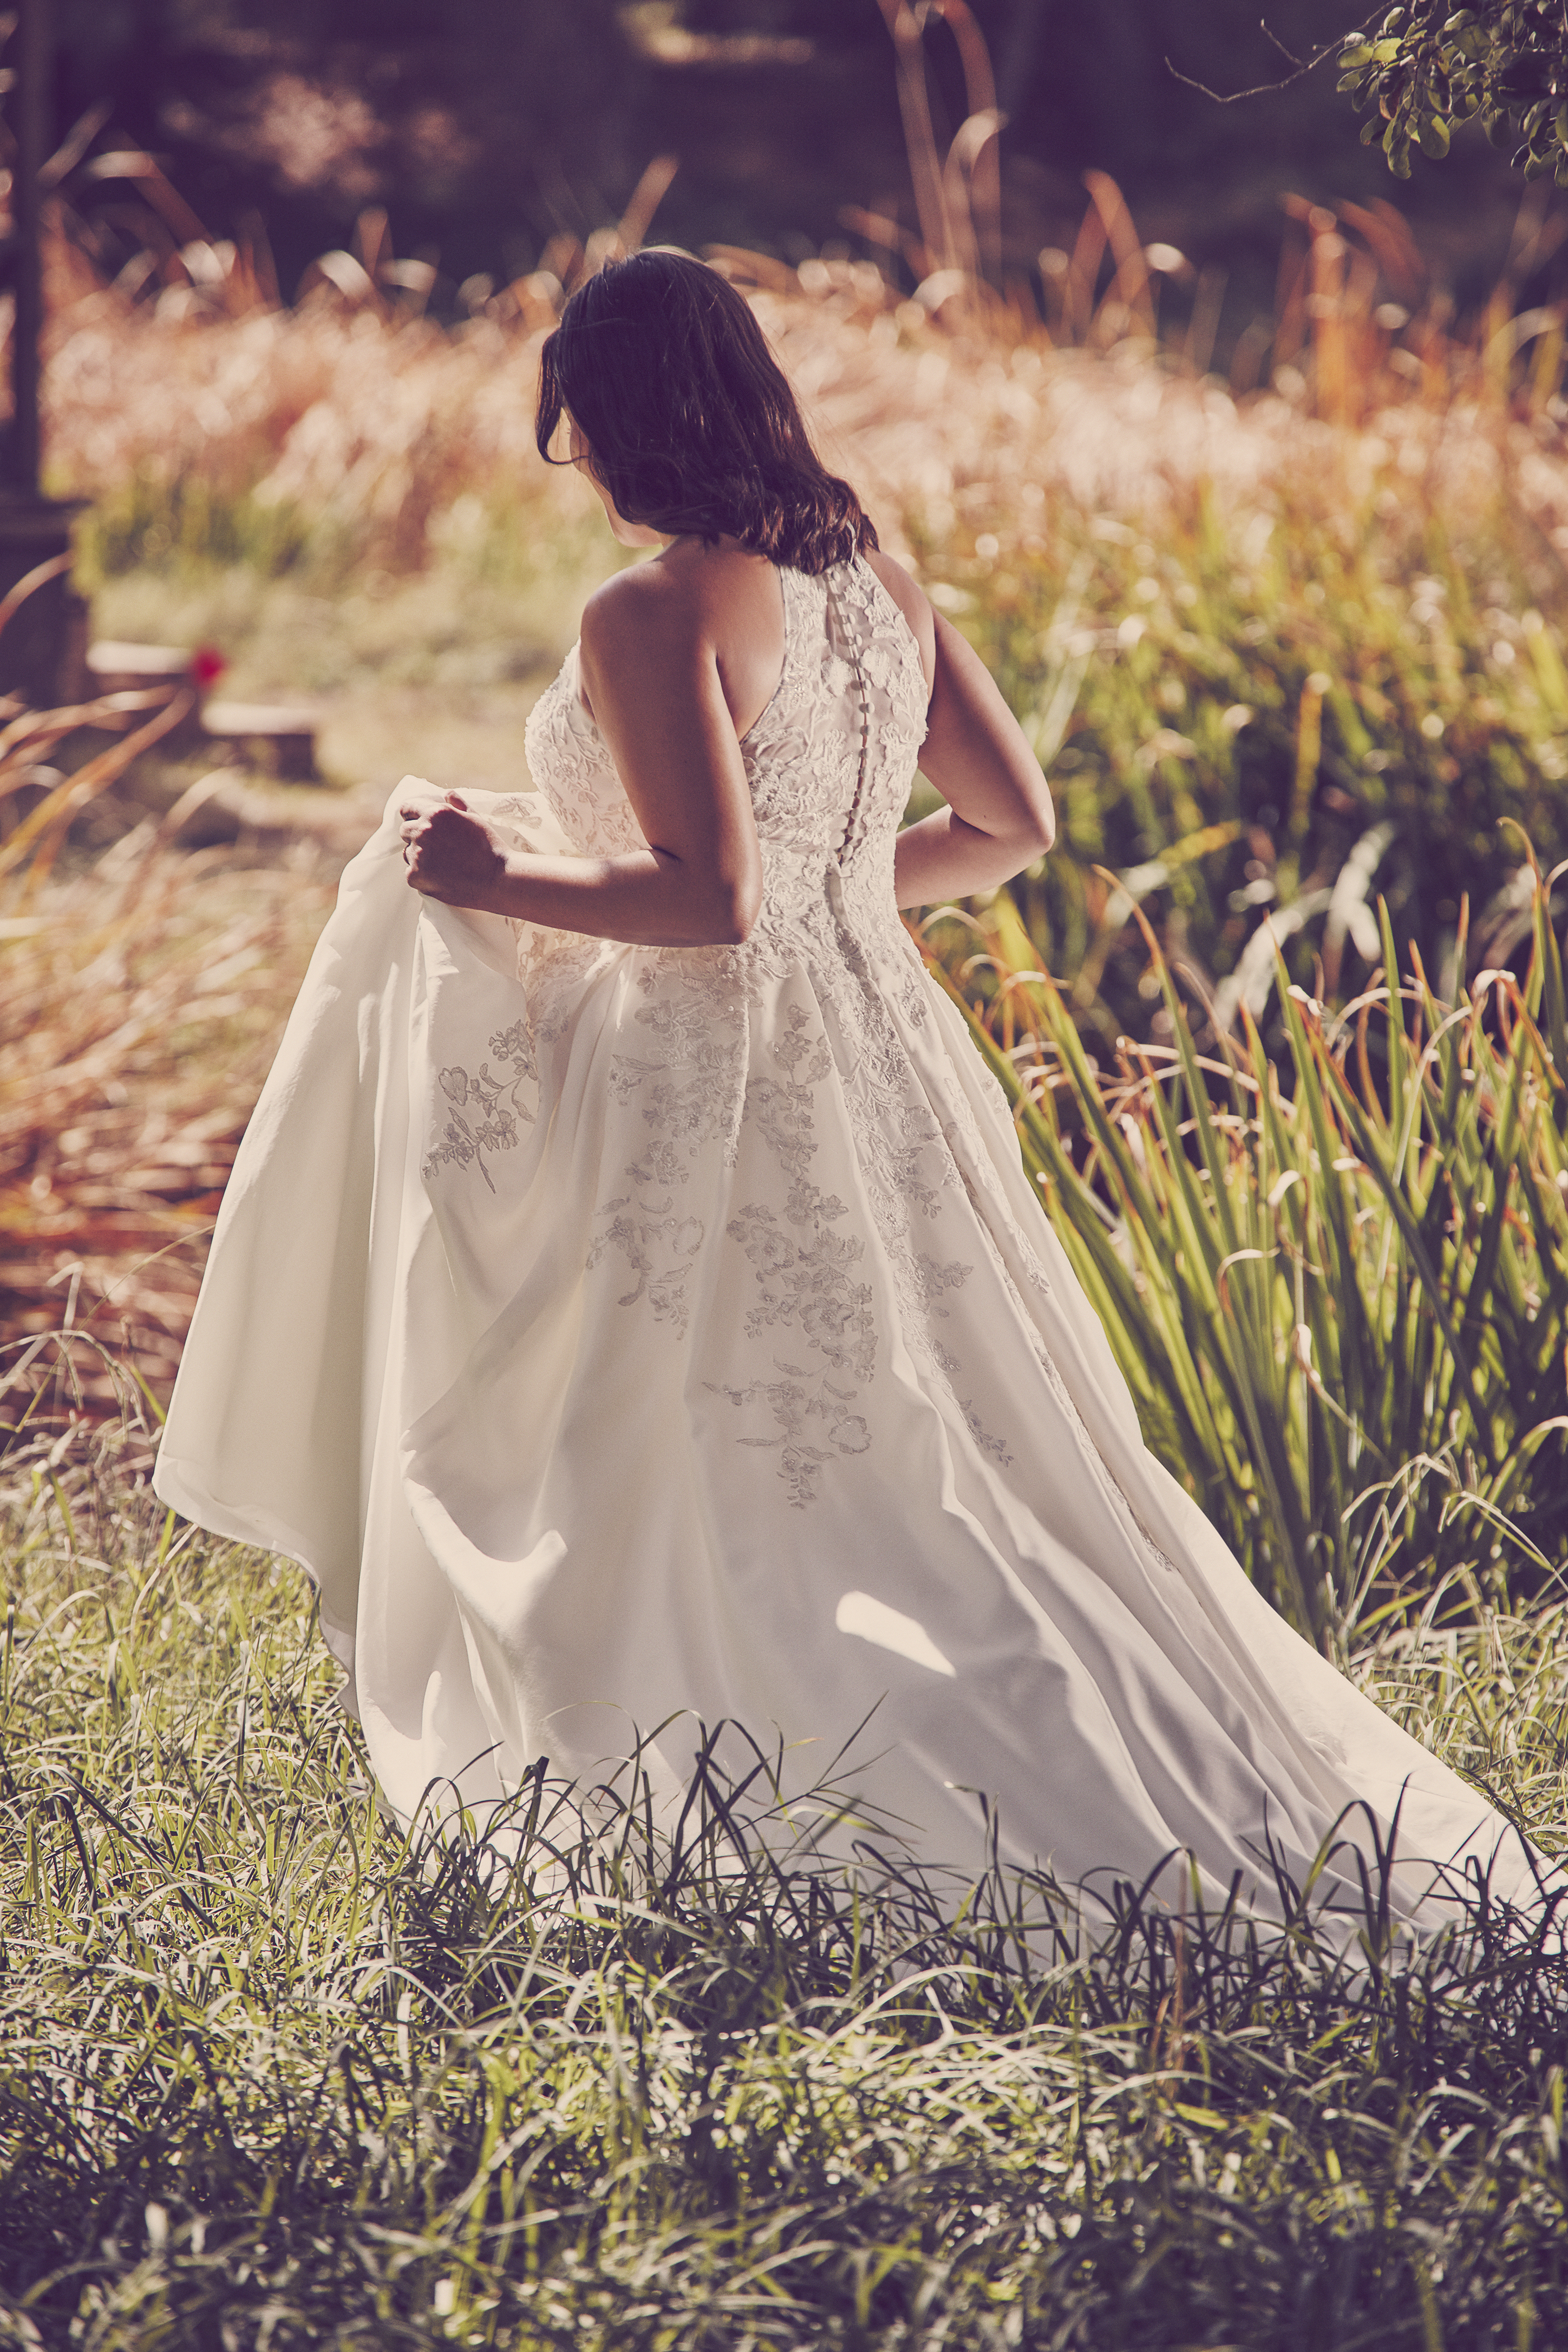 Woman walking in grass holding up skirt of ball gown wedding dress